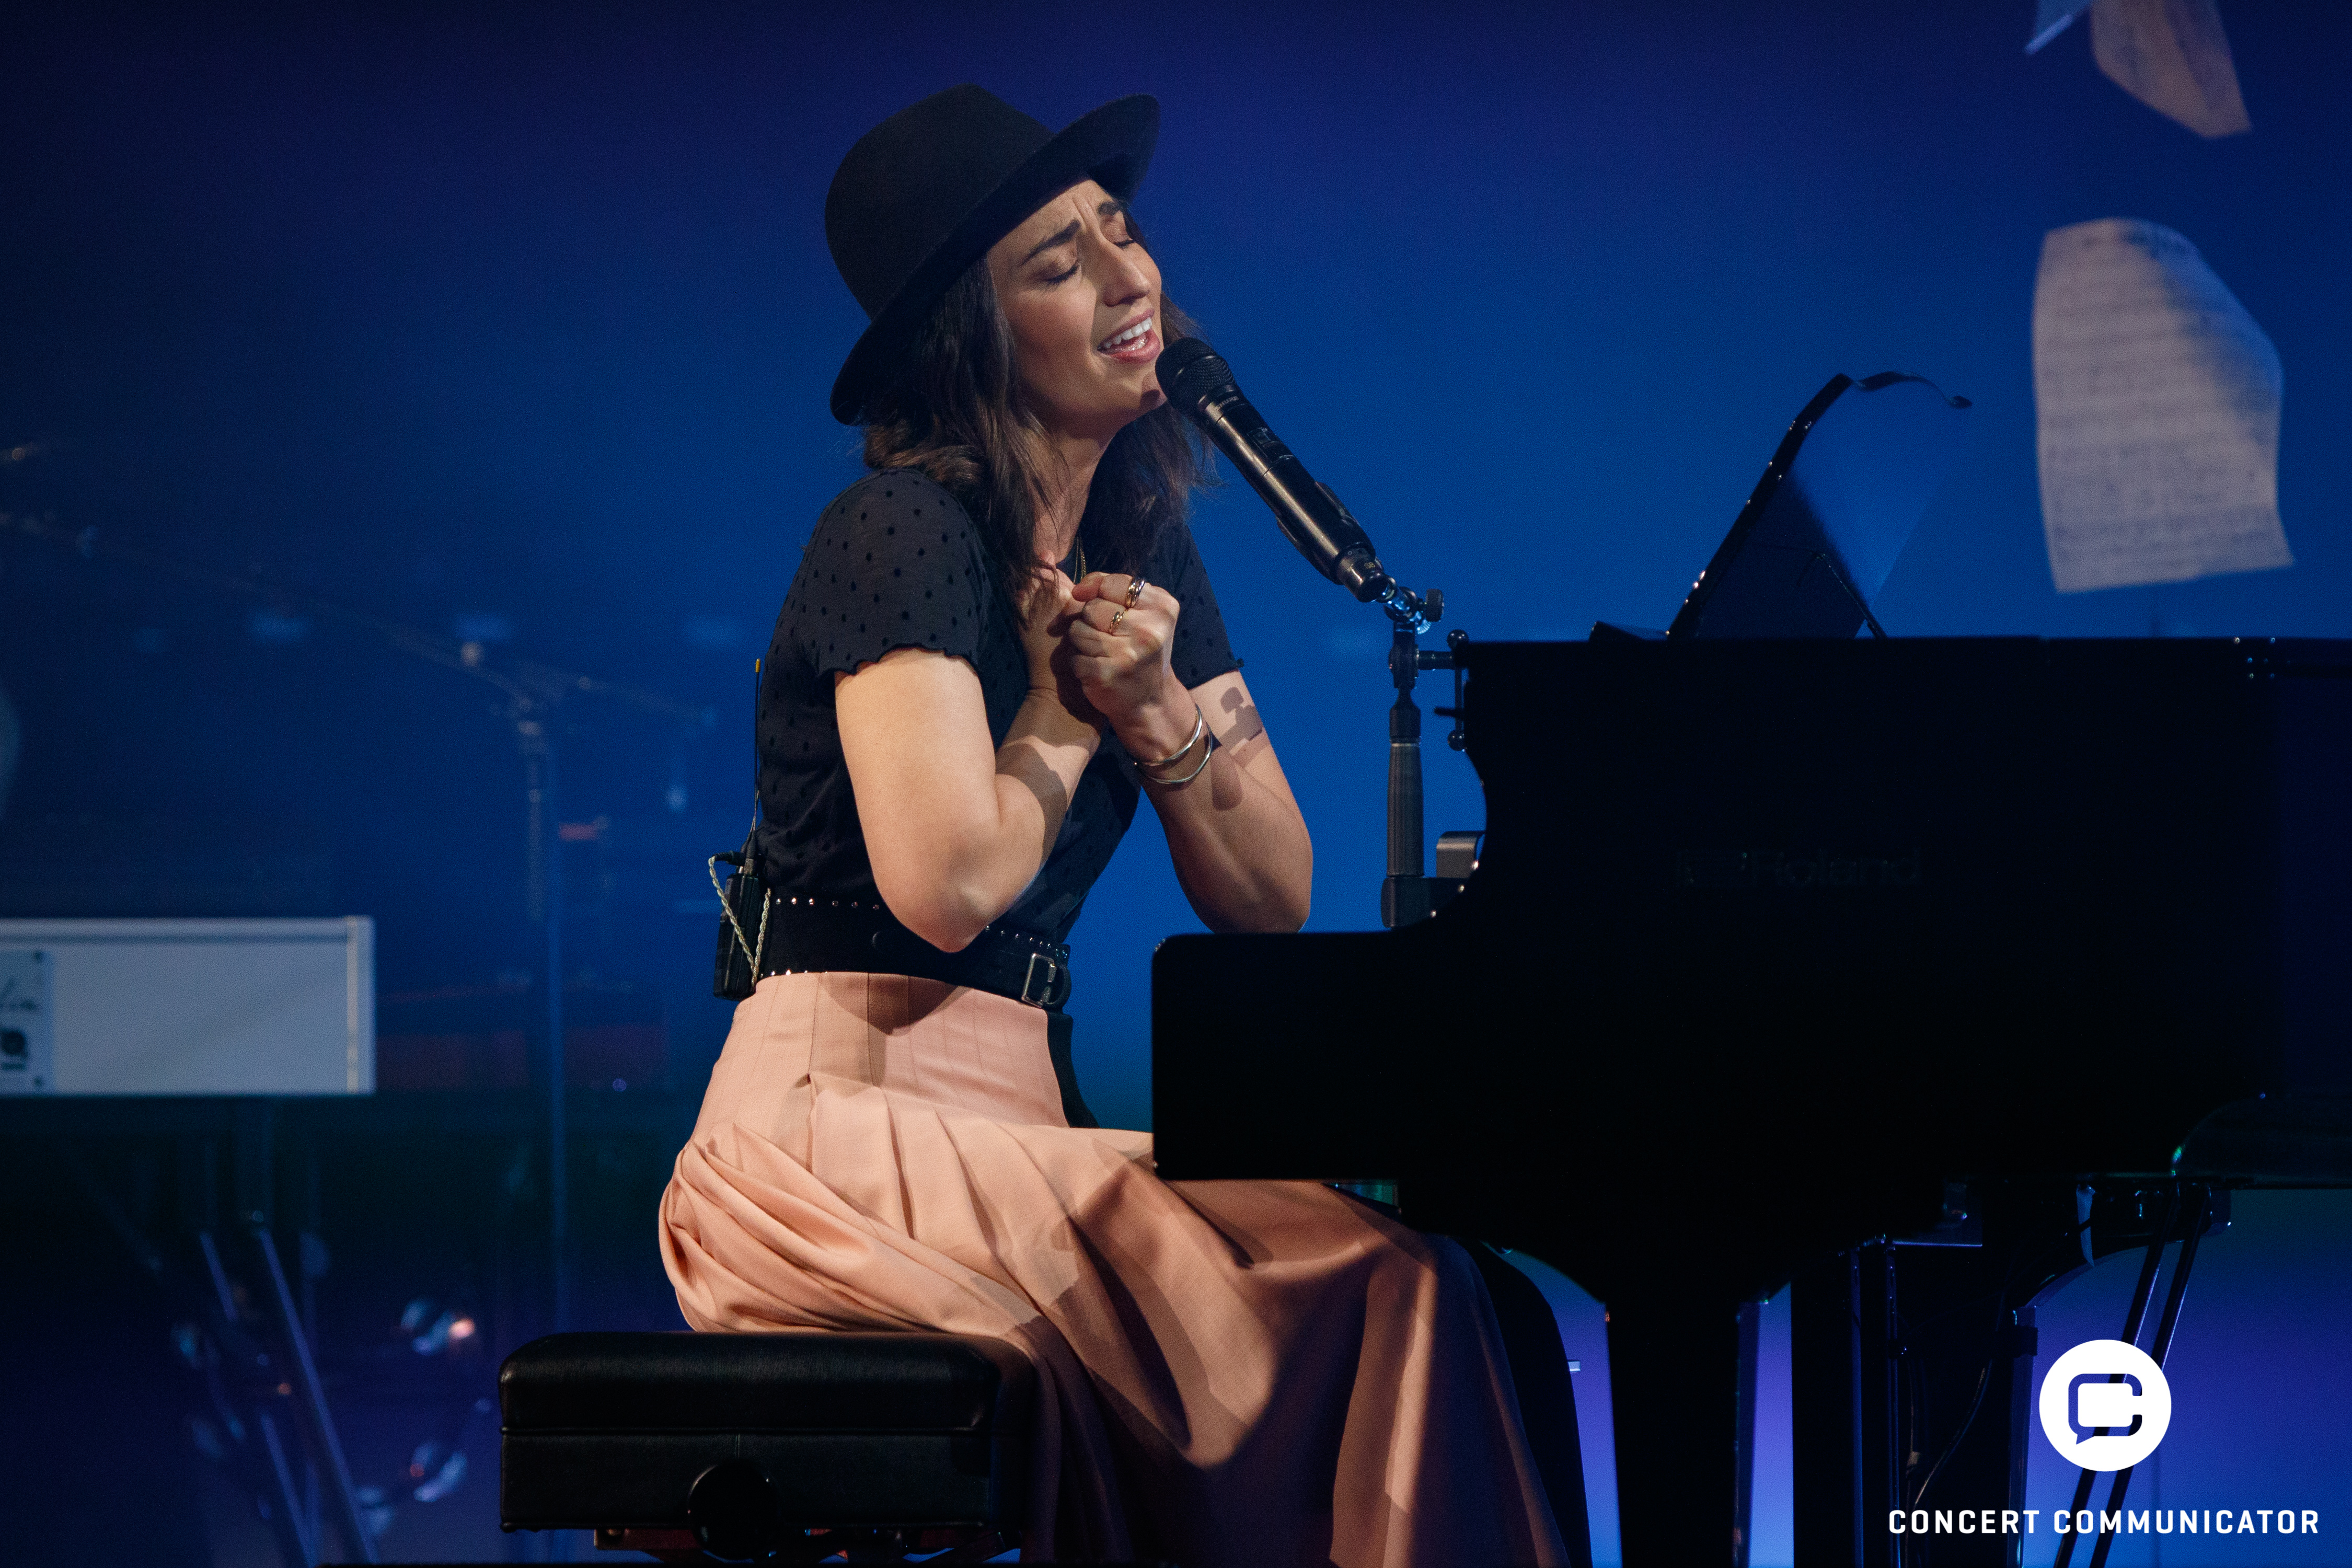 Sara Bareilles @ Xcel Energy Center